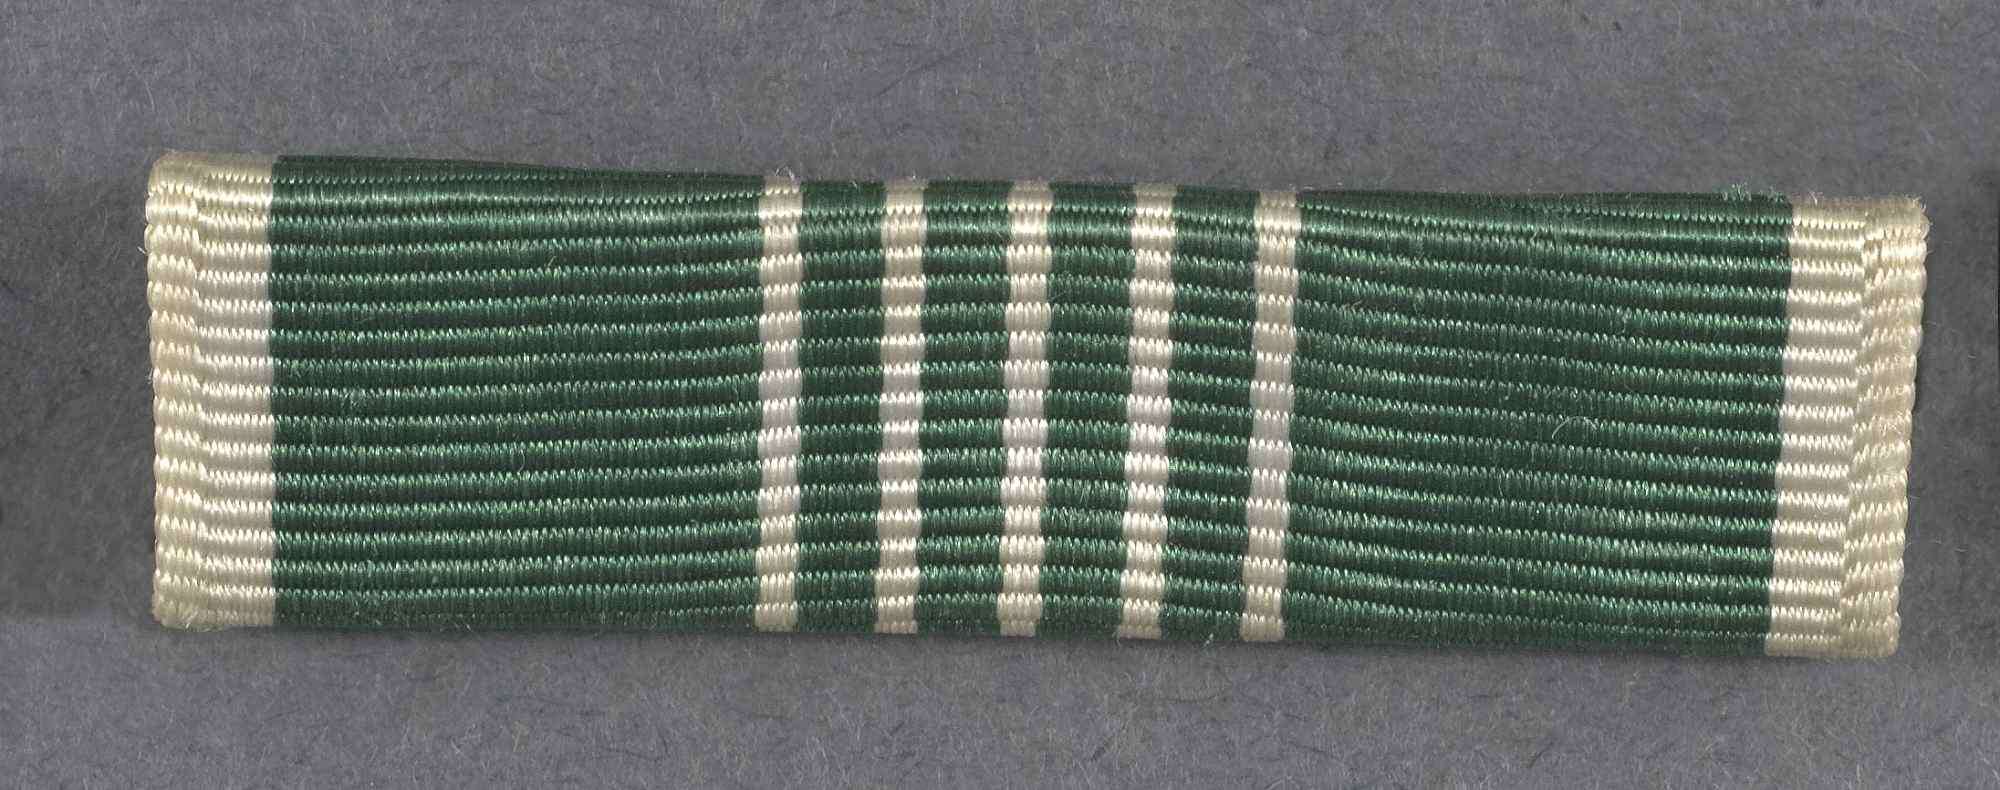 Army Commendation Medal's ribbon